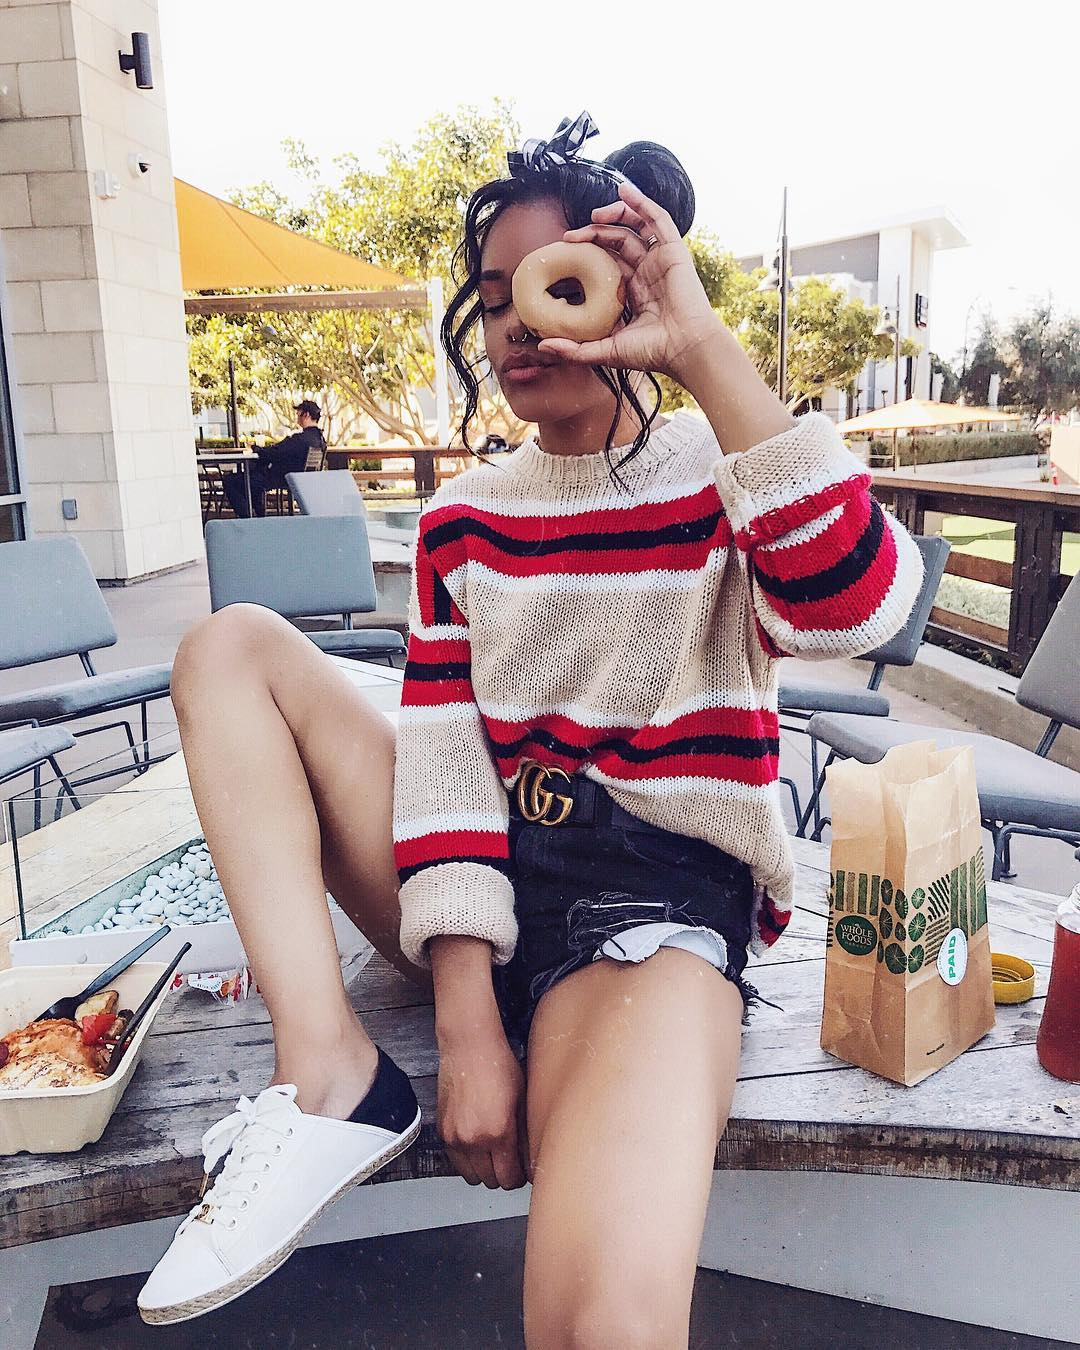 The Best OOTD Instagram Accounts To Follow